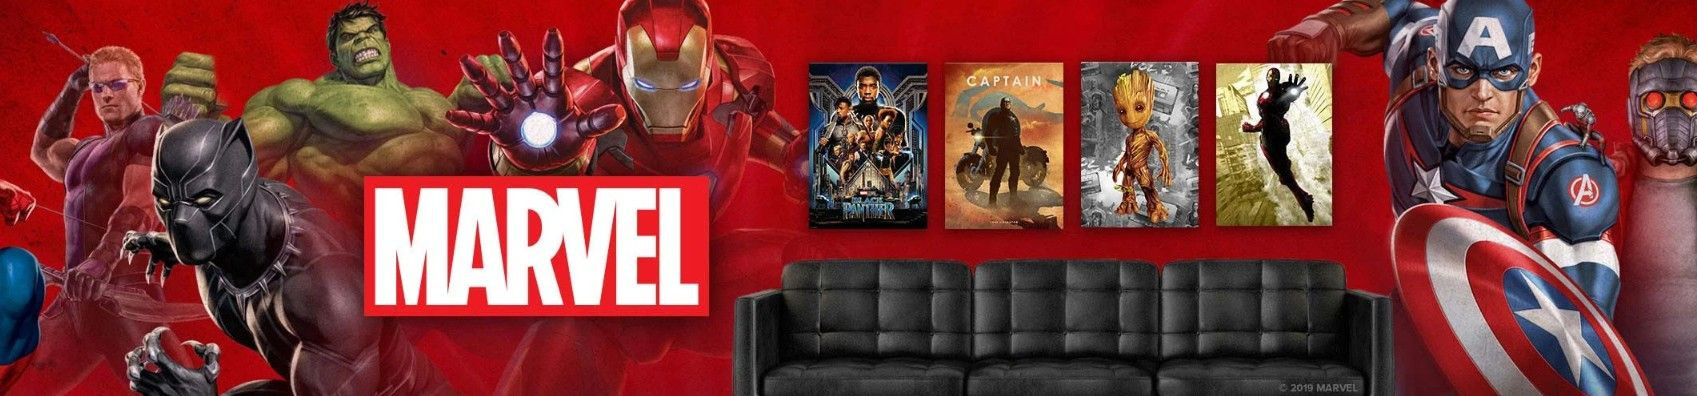 Marvel Officialy Licensed Prints on Wall